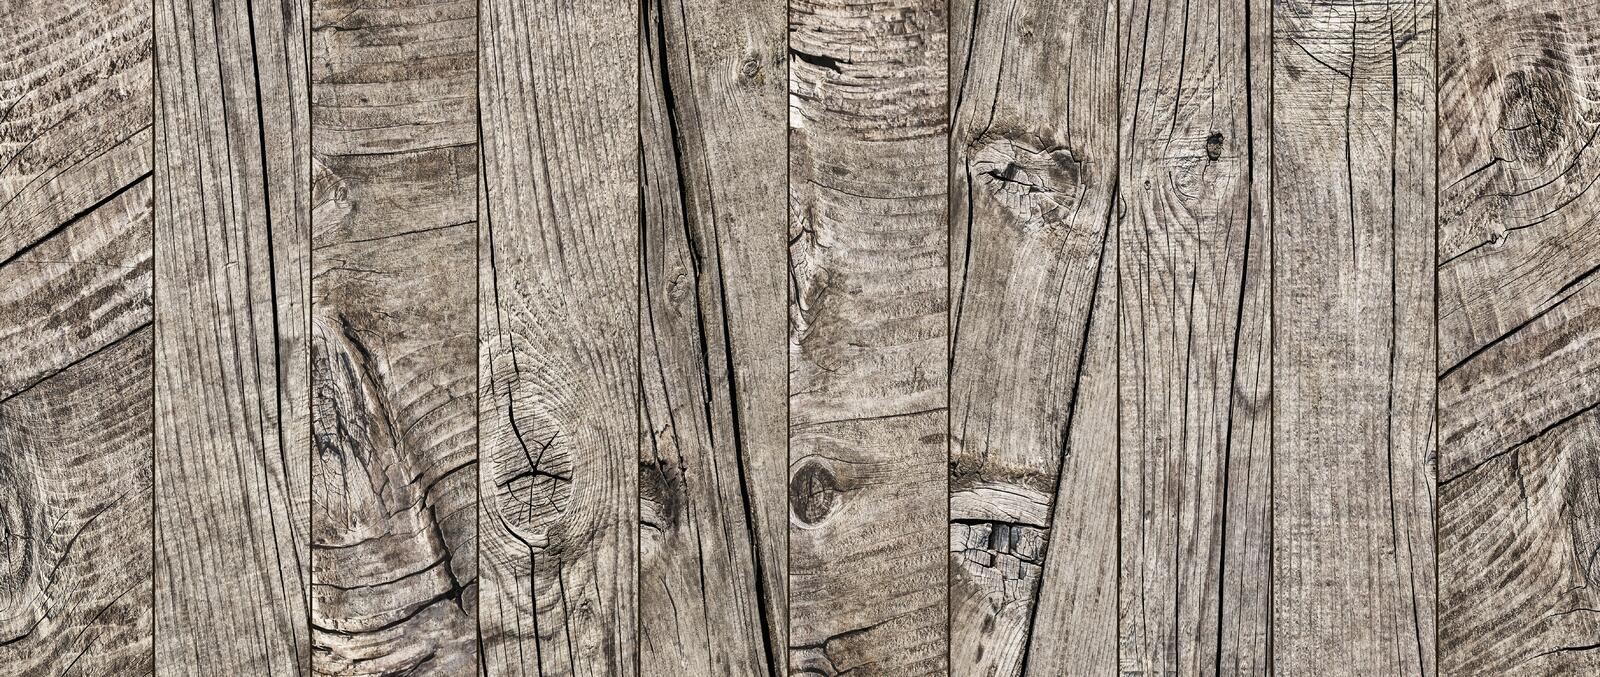 Photograph of old weathered cracked knotted Pine wood floorboards grunge texture detail royalty free stock images